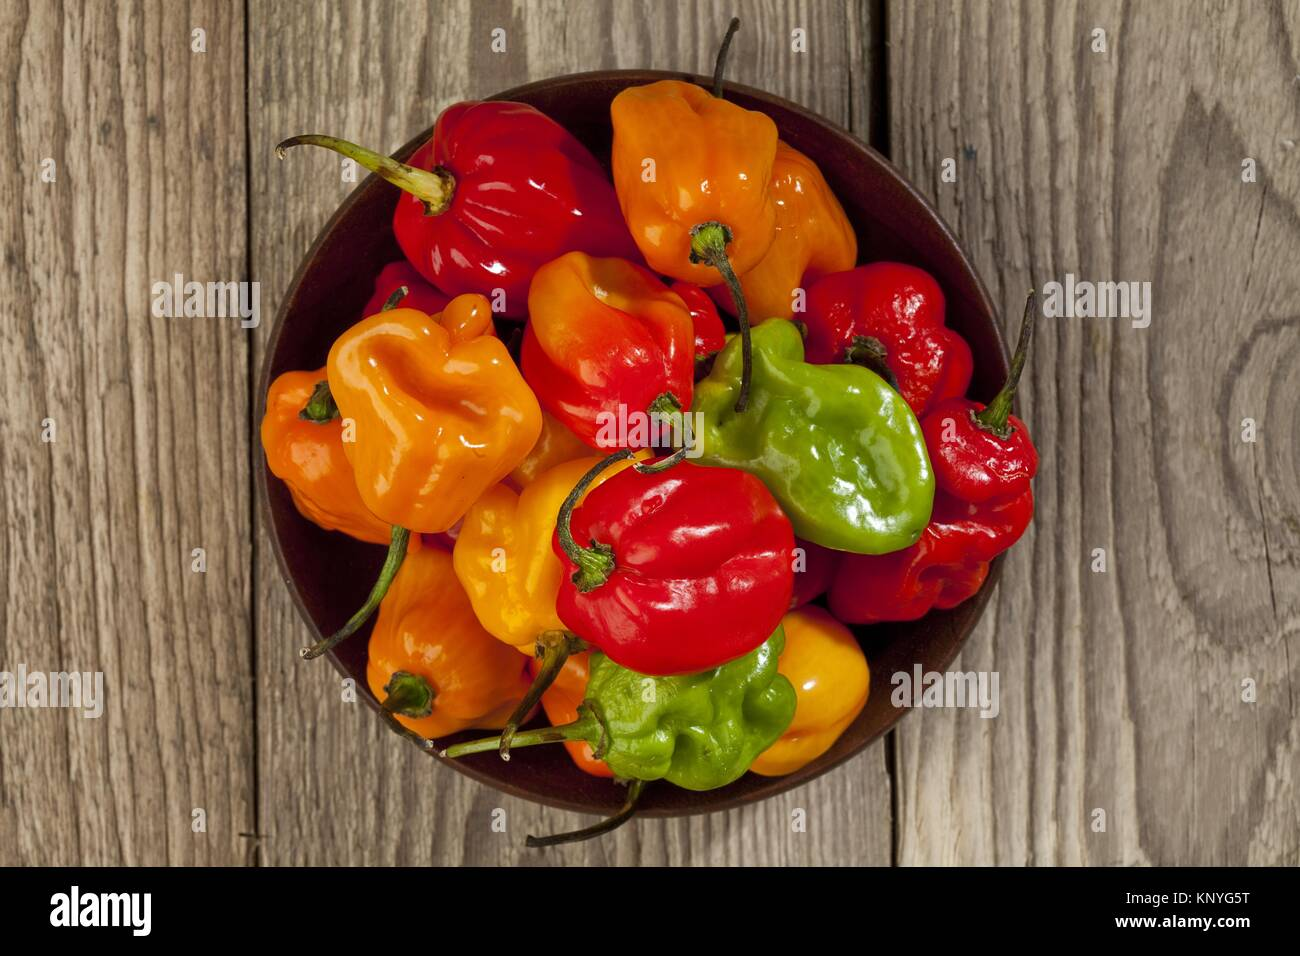 bowl of habanero chili peppers Stock Photo